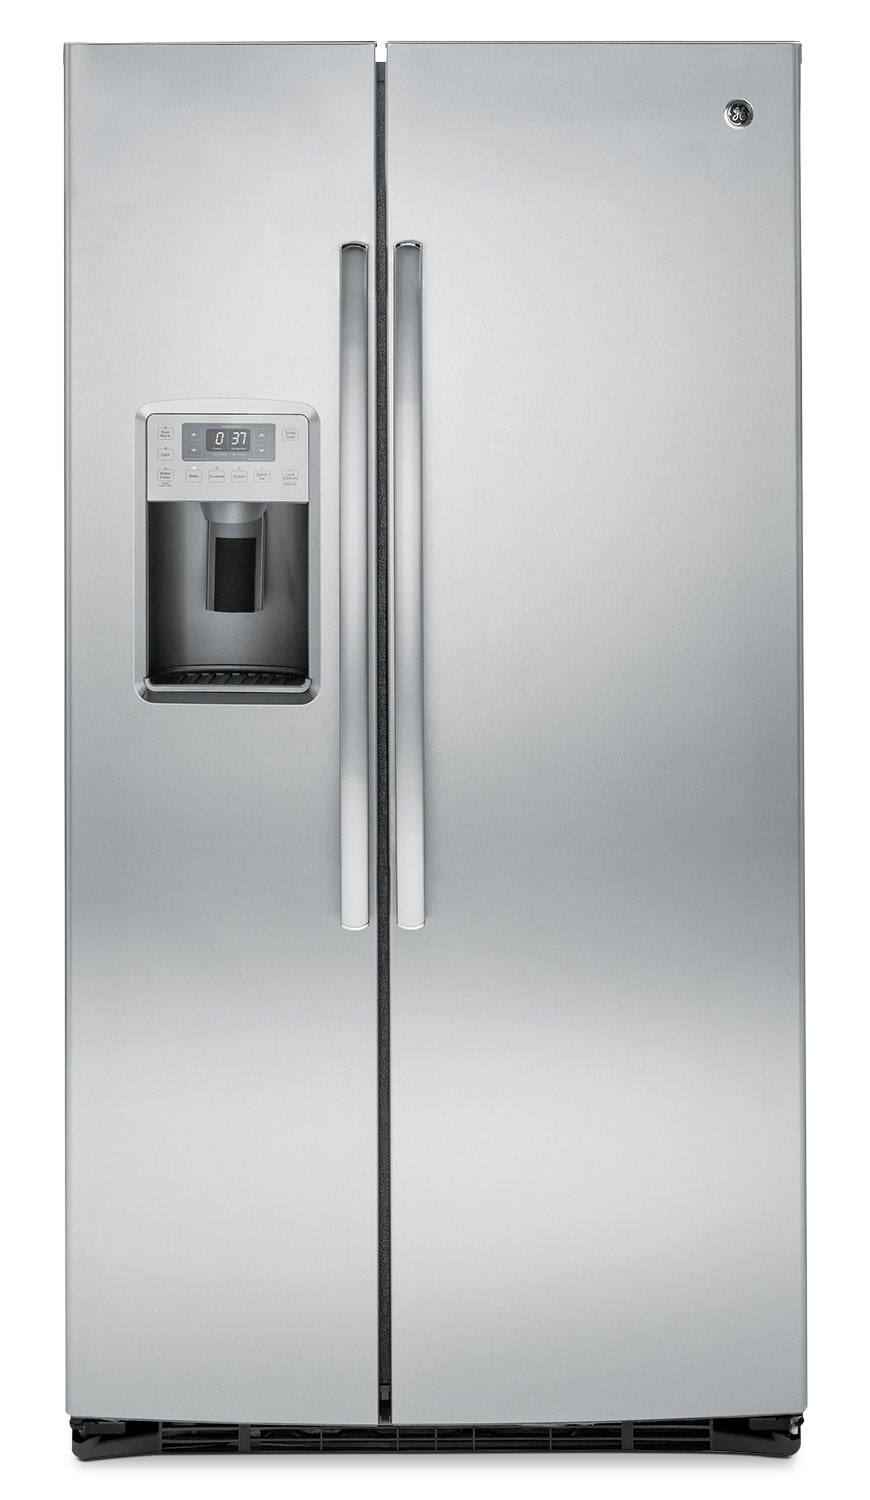 GE 25.4 Cu. Ft. Side-by-Side Refrigerator with Water Dispenser - Grey